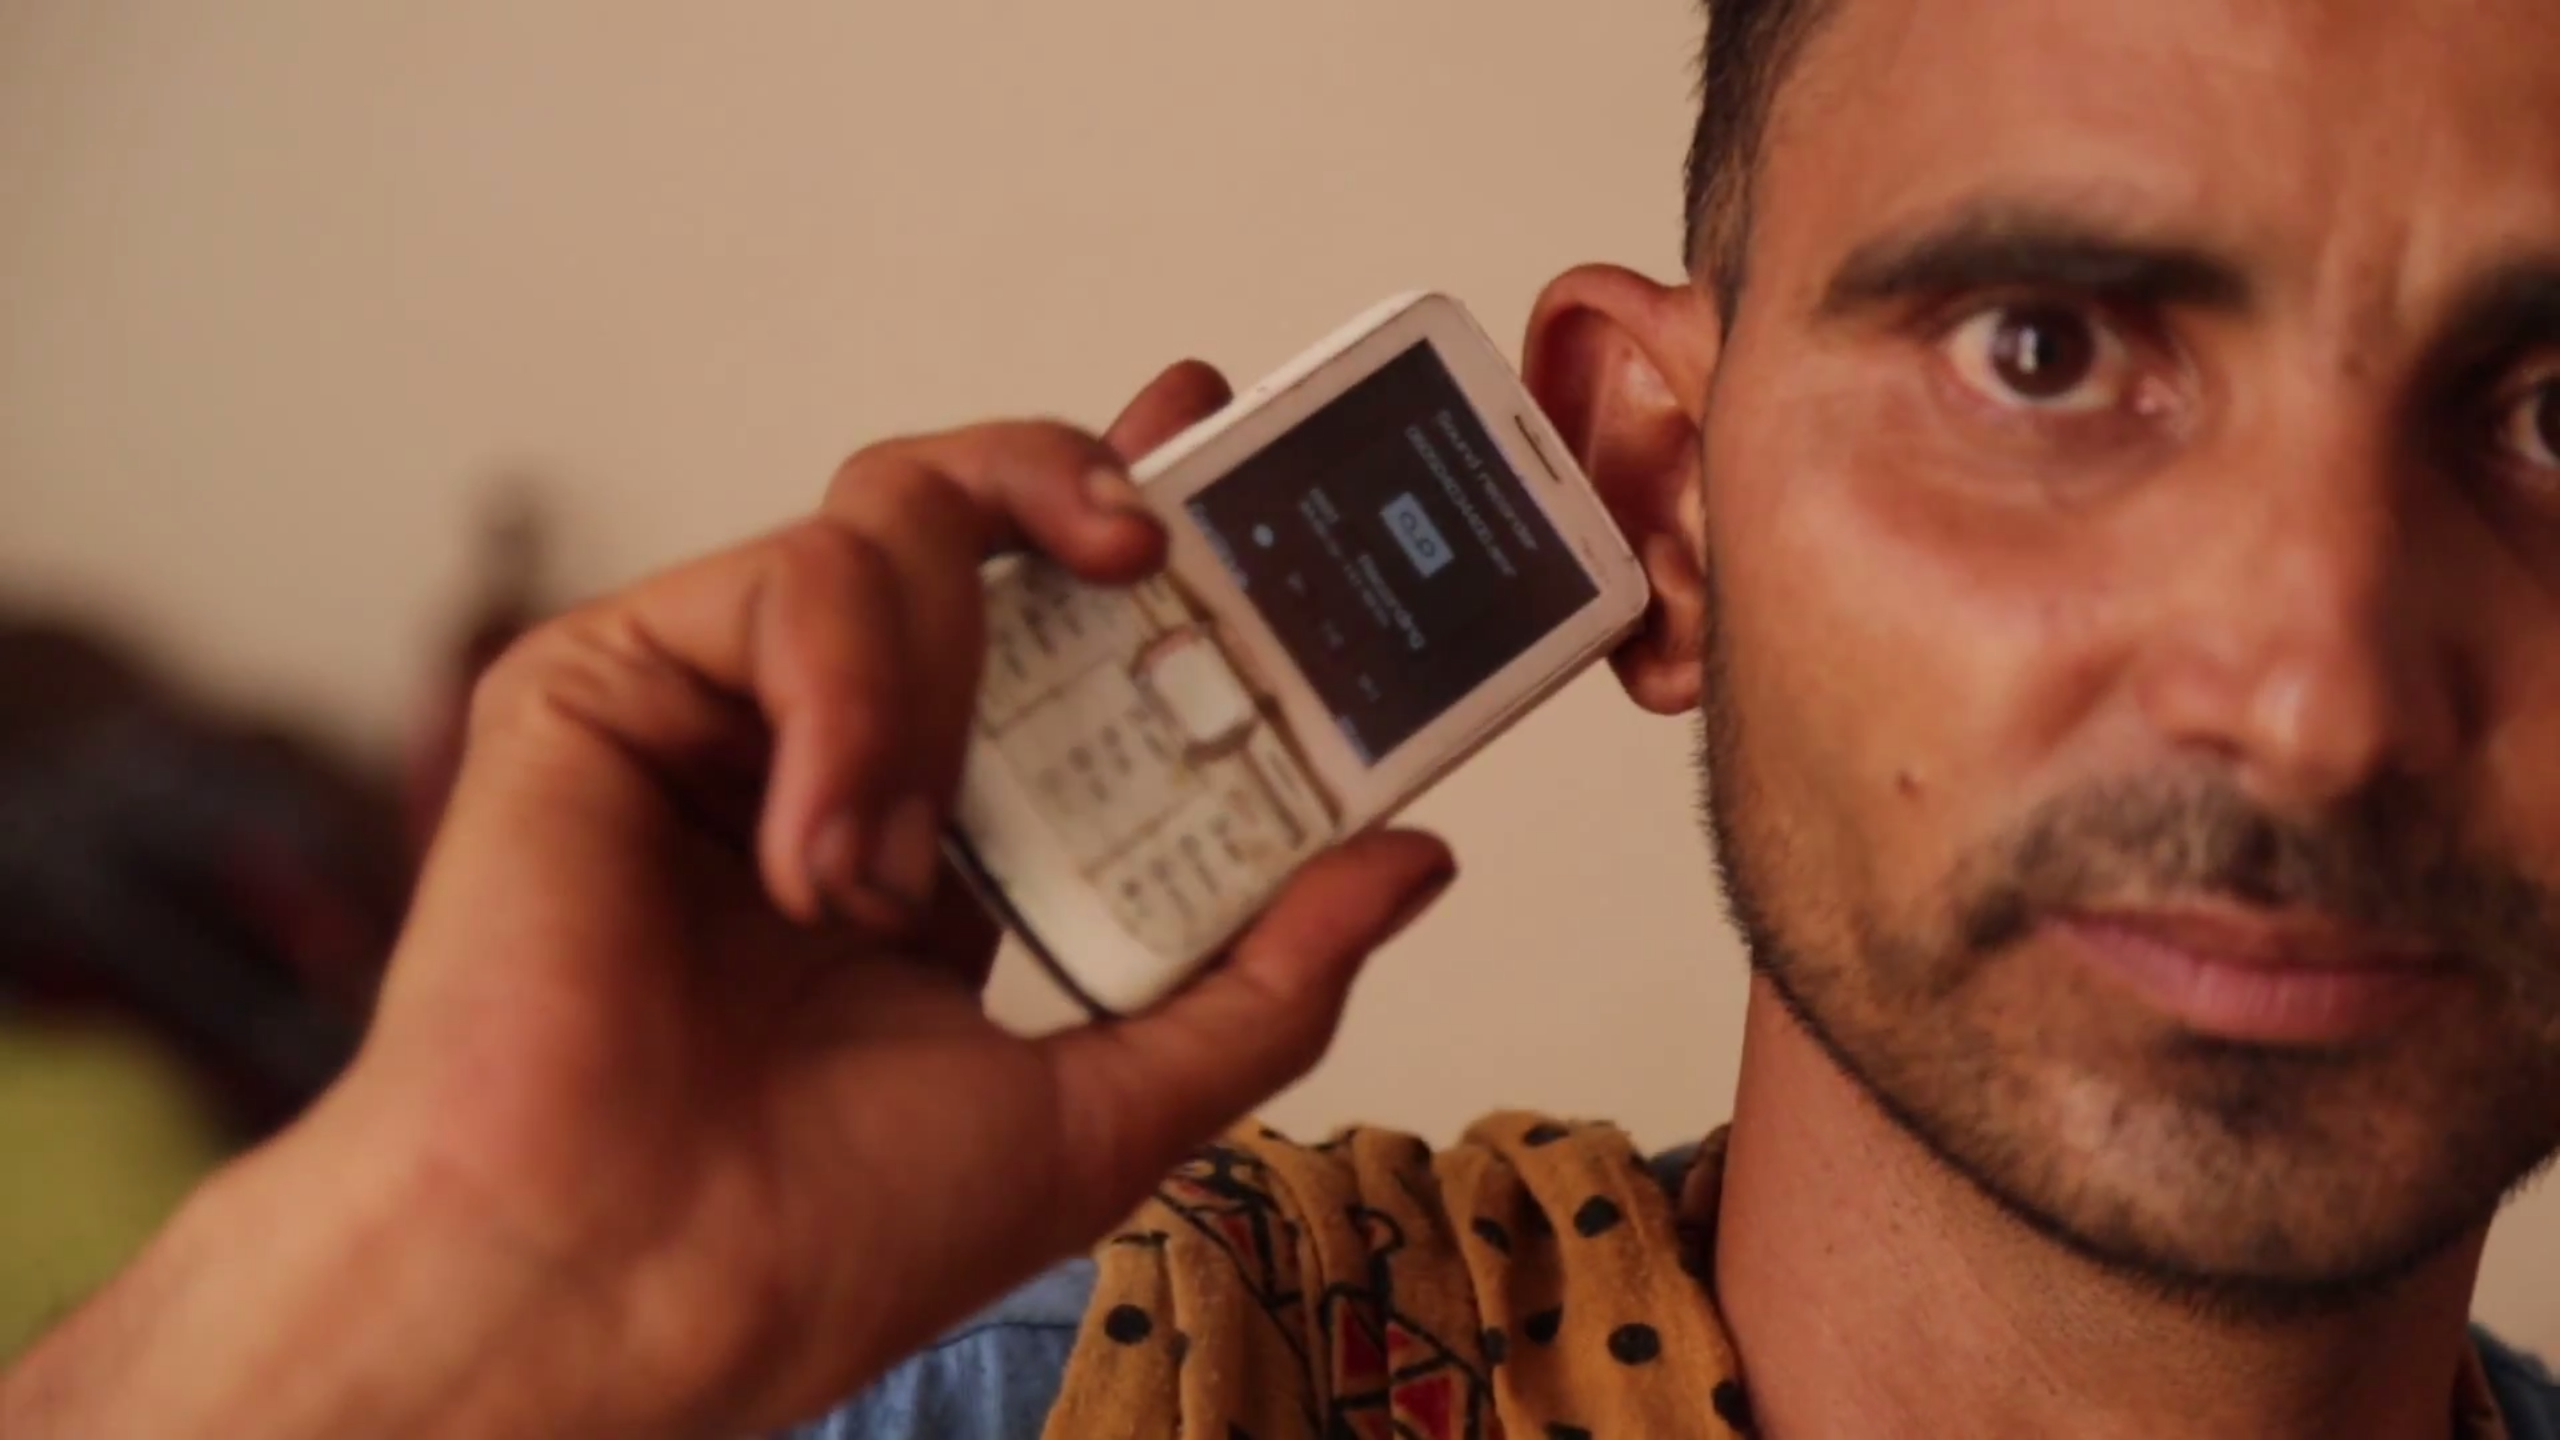 Chatur listeners to Udaan using a card on his mobile phone